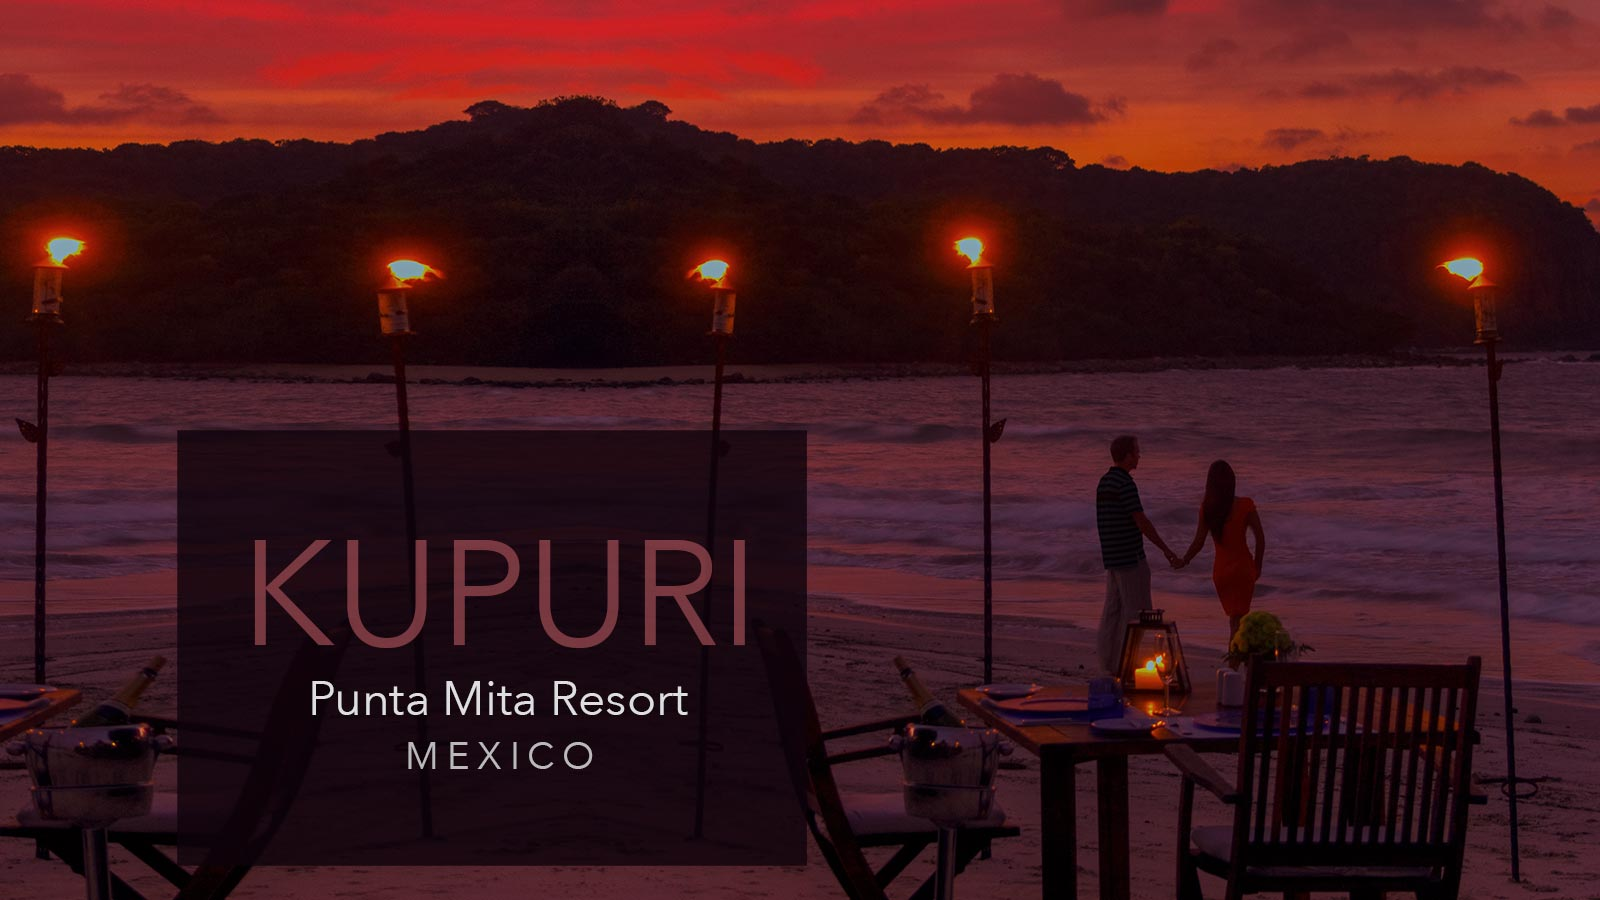 Kupuri - Homes and Homesites at the Punta Mita Resort - Nayarit, Mexico